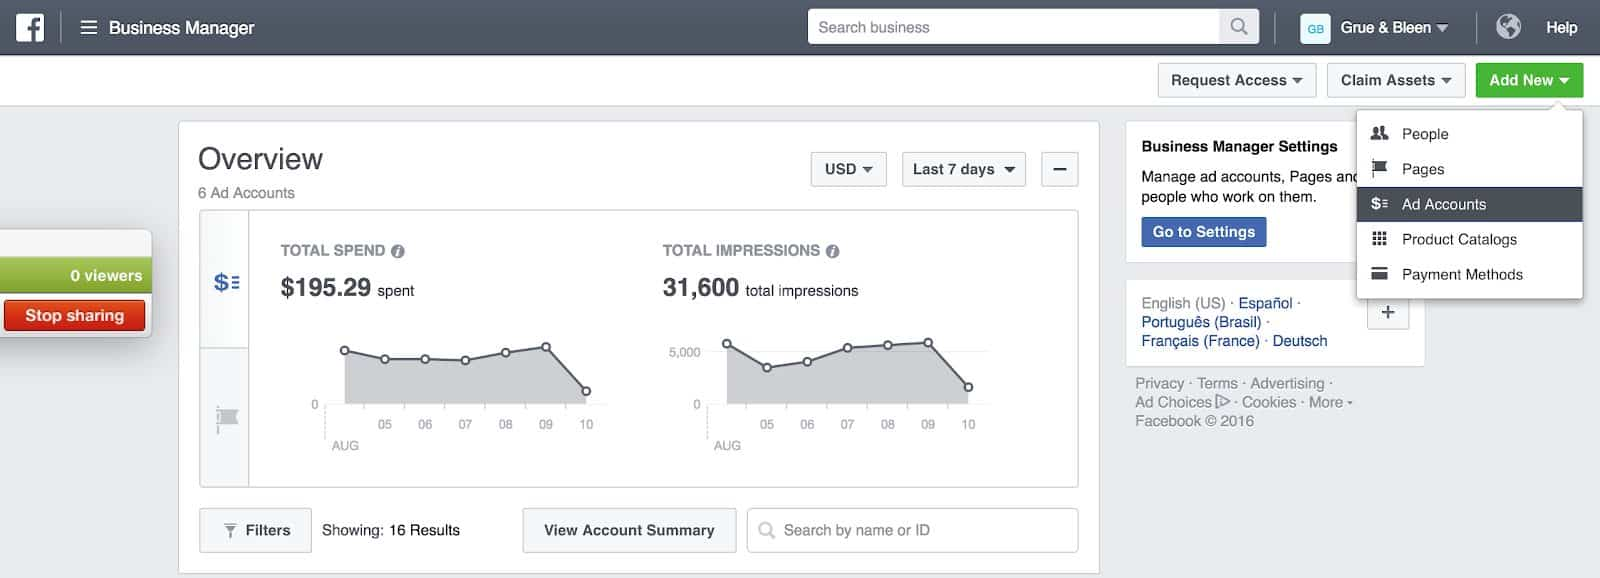 Facebook Business Manager - Add a New Ad Account